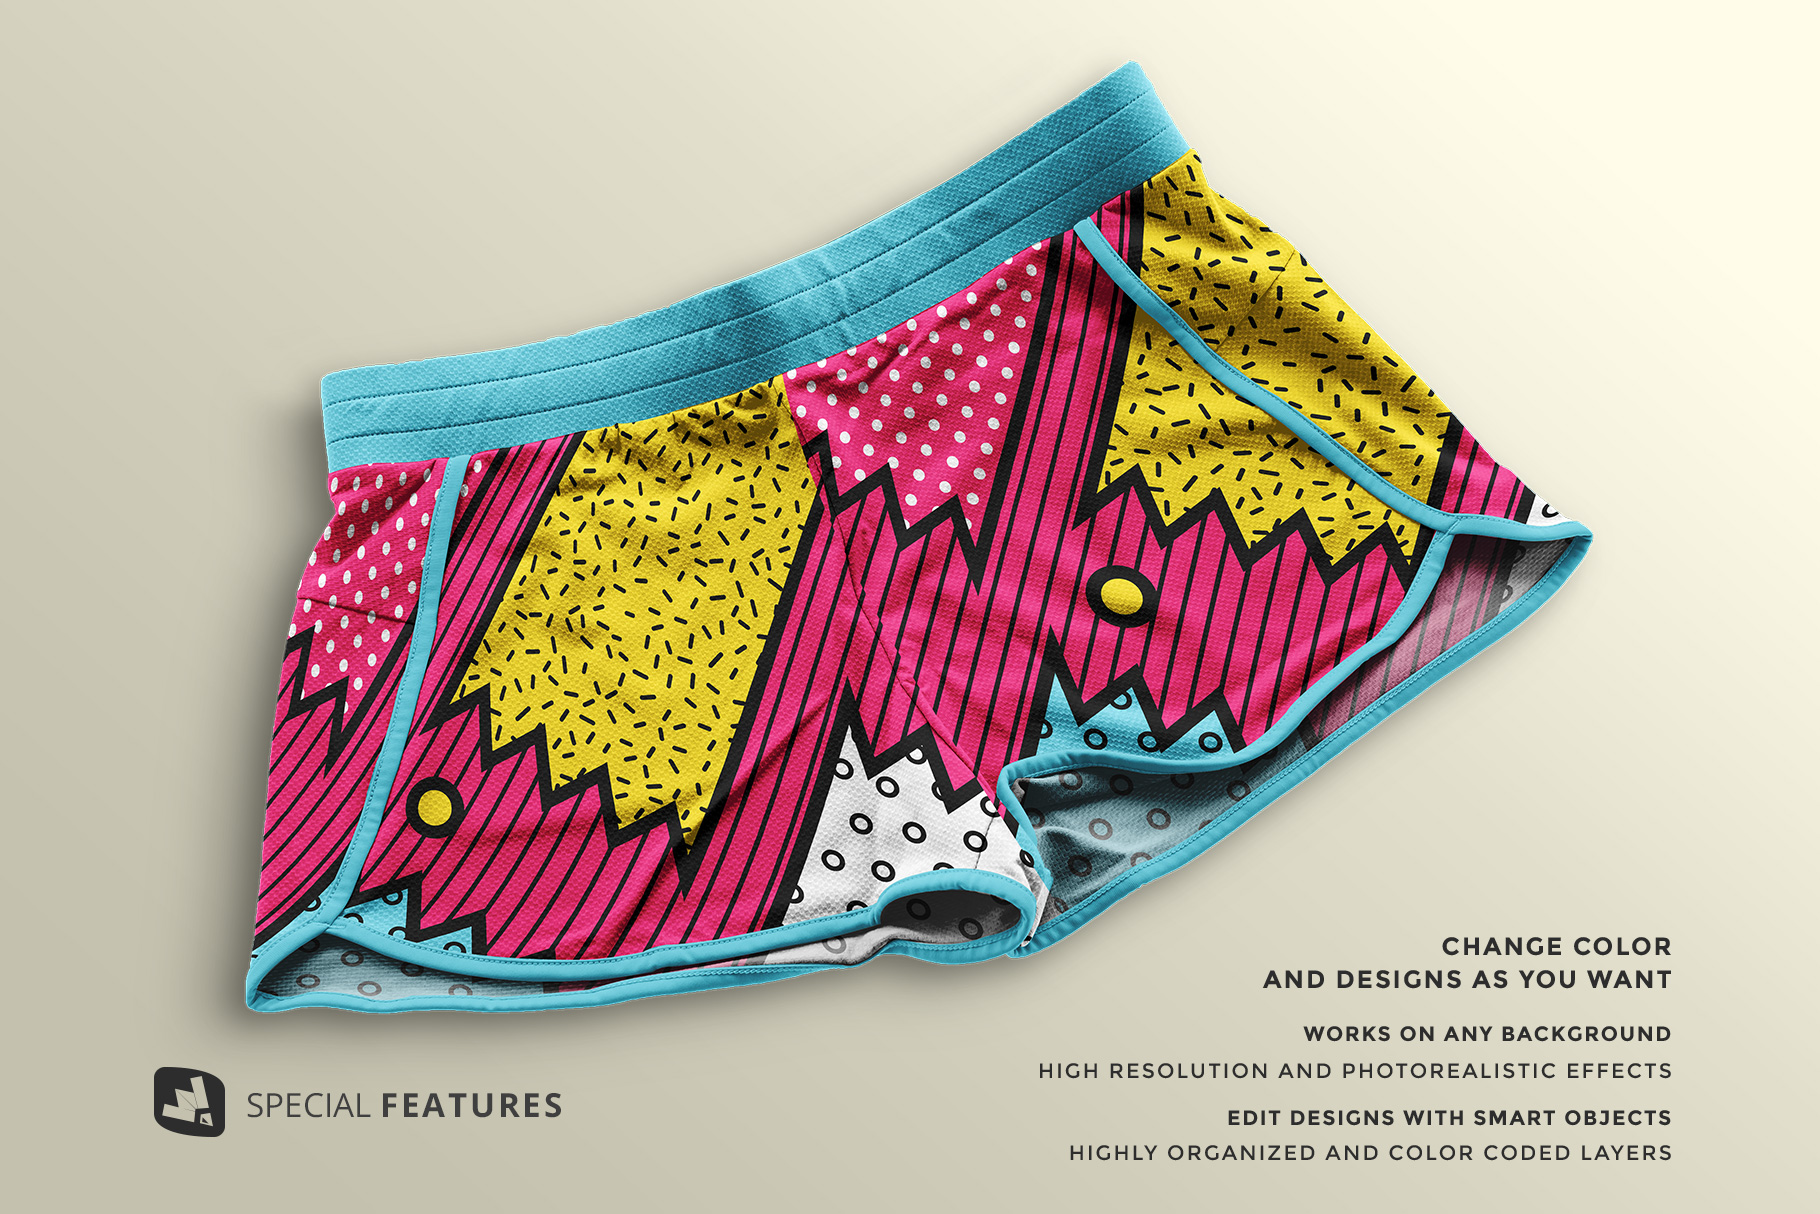 features of the female sportswear shorts mockup